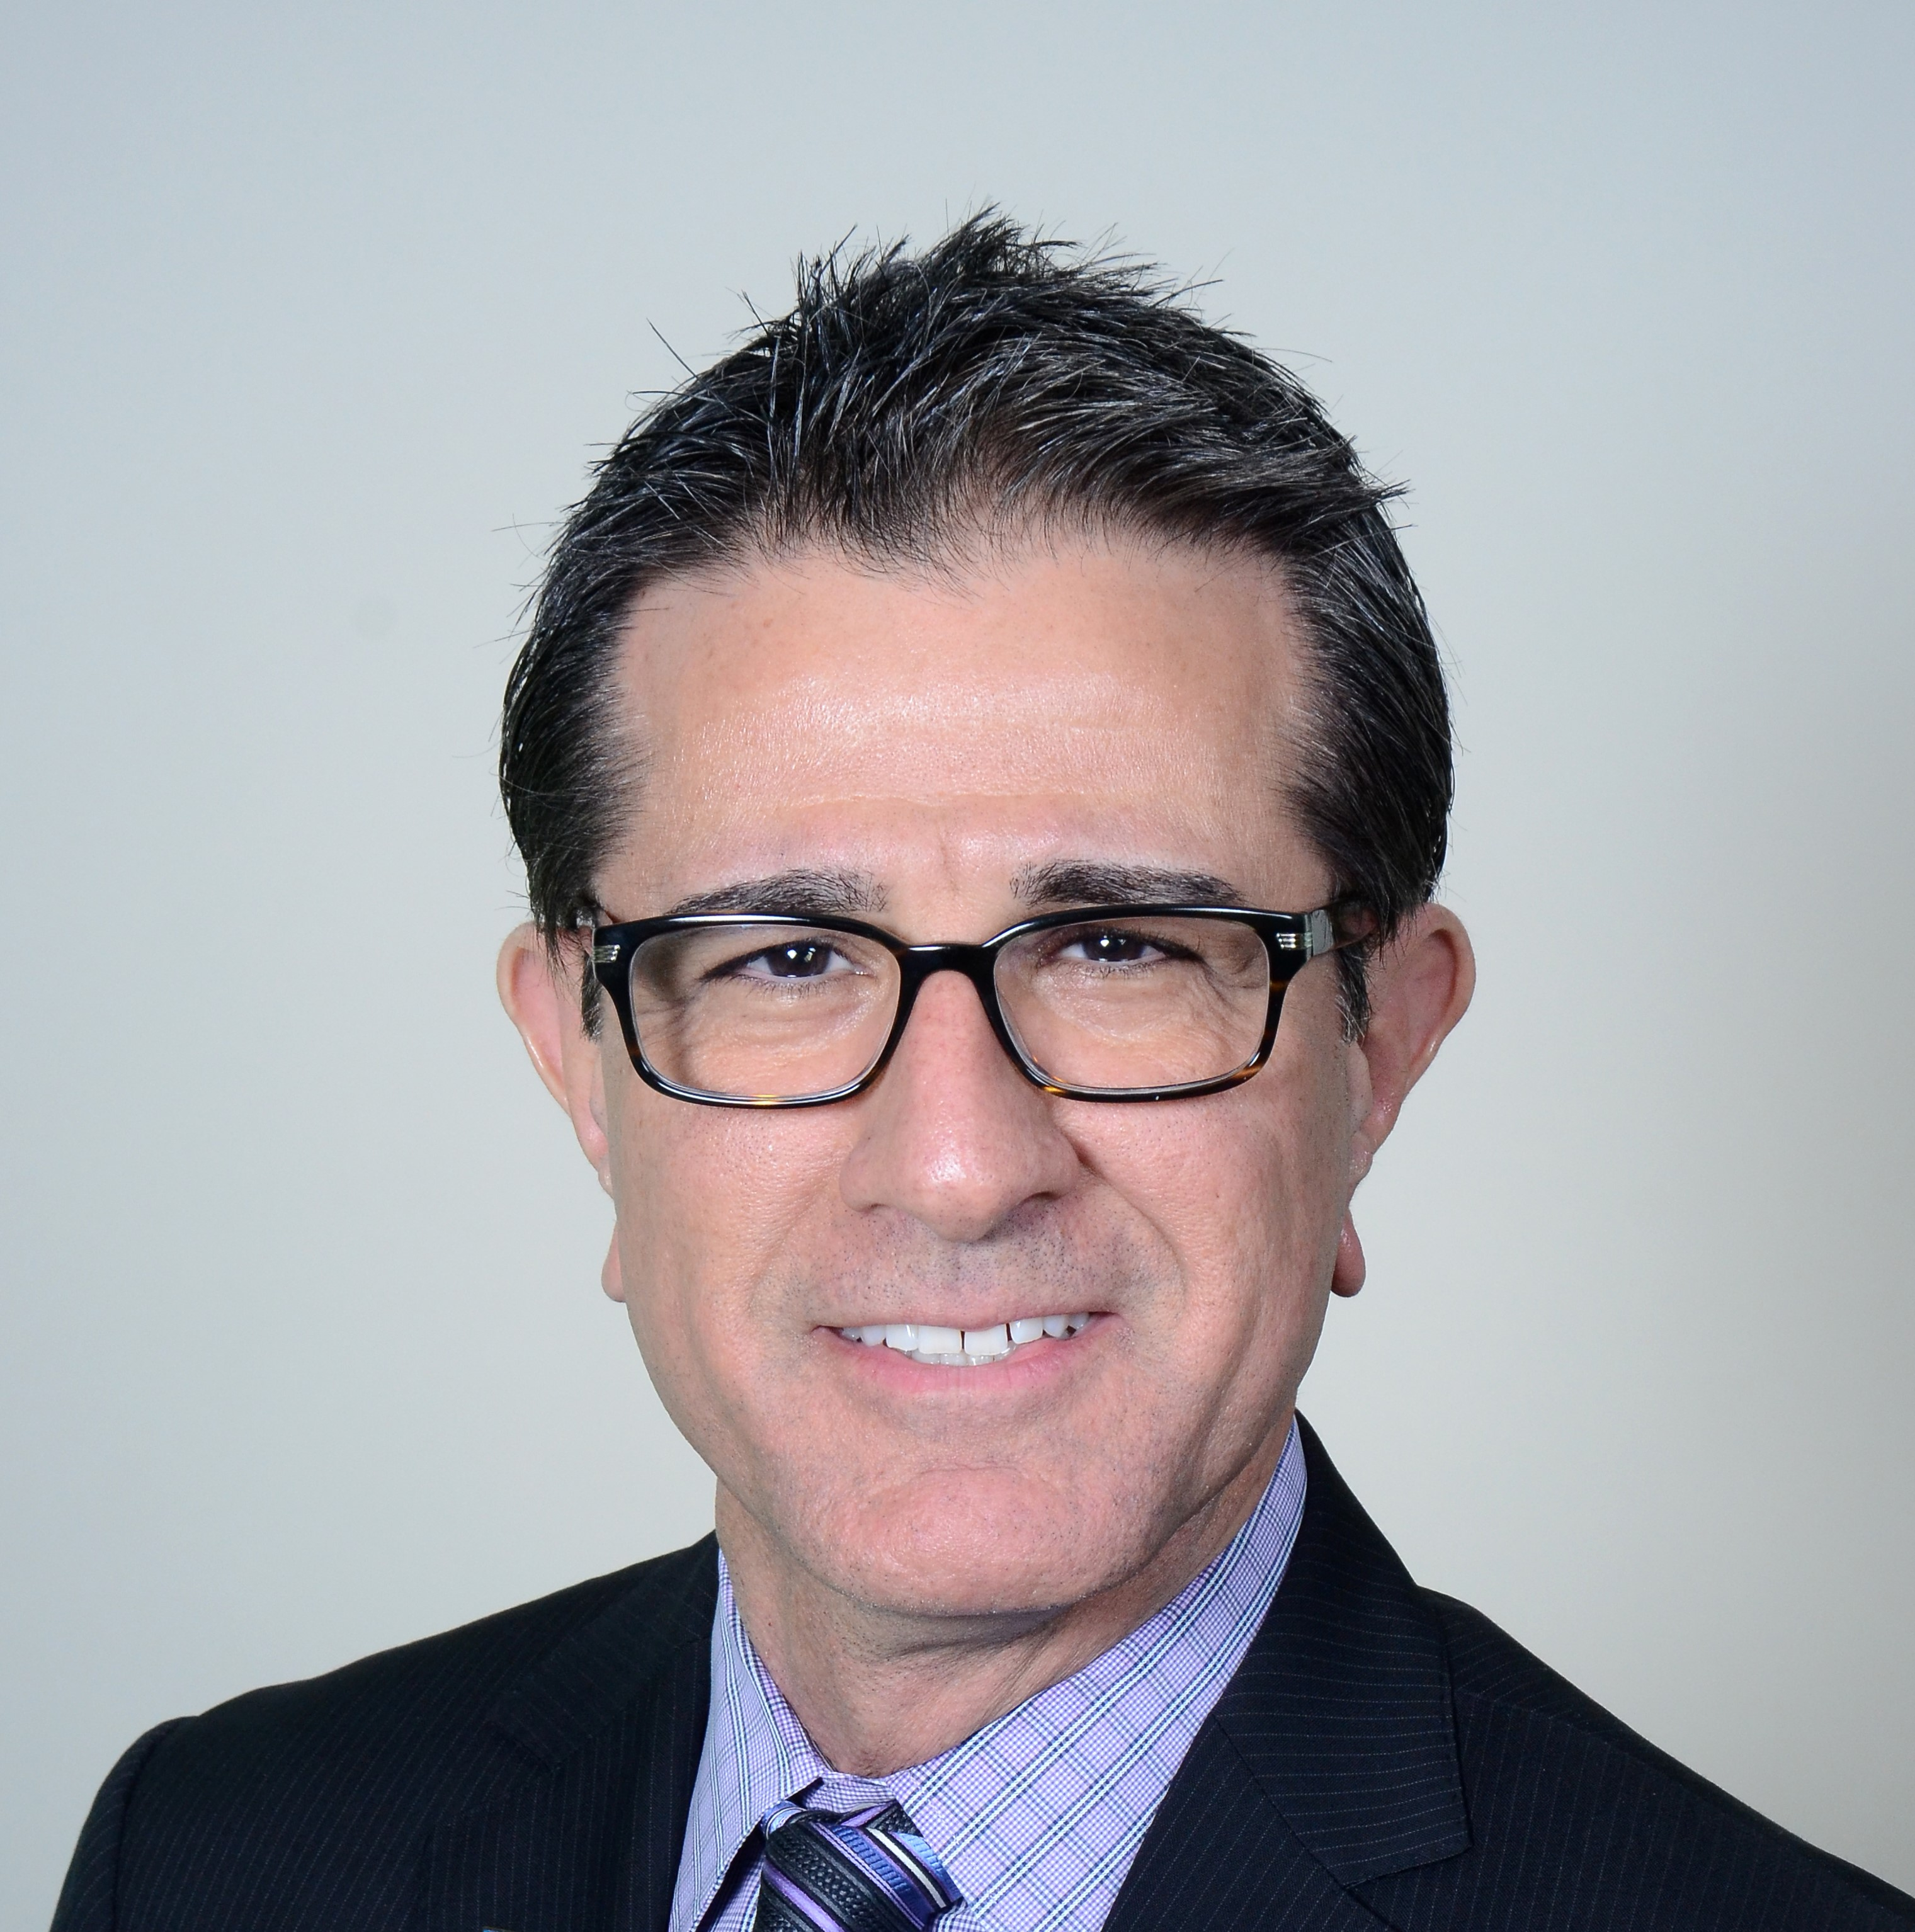 John McConville - Vice President of Administration & Compliance